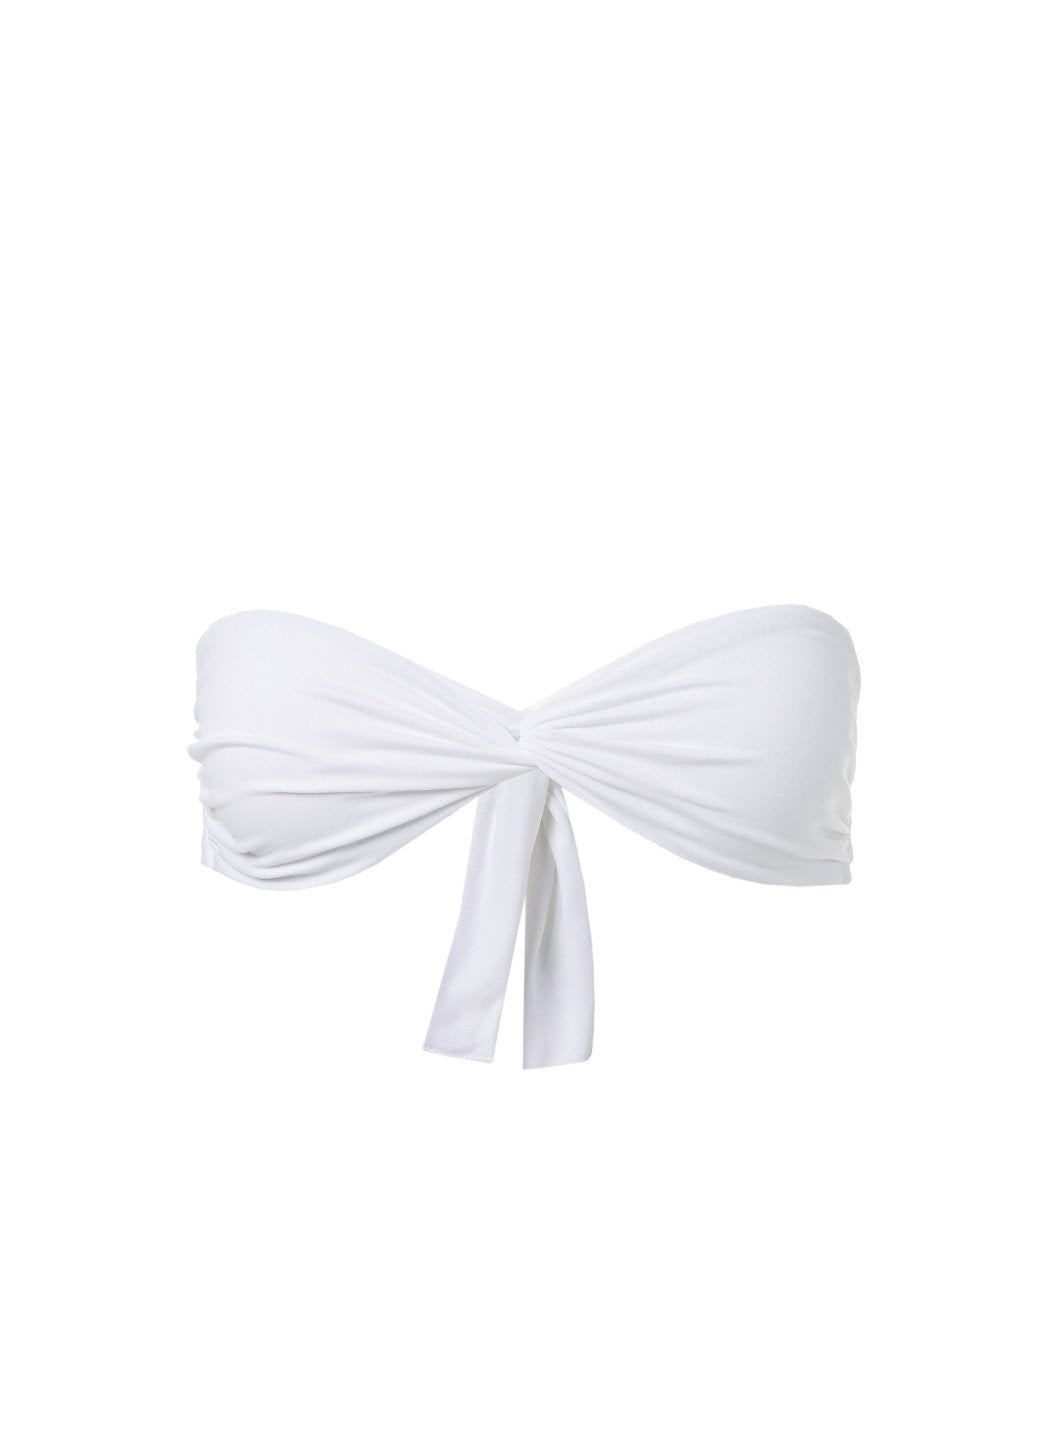 Lyon White High Waisted Bandeau Bikini Top